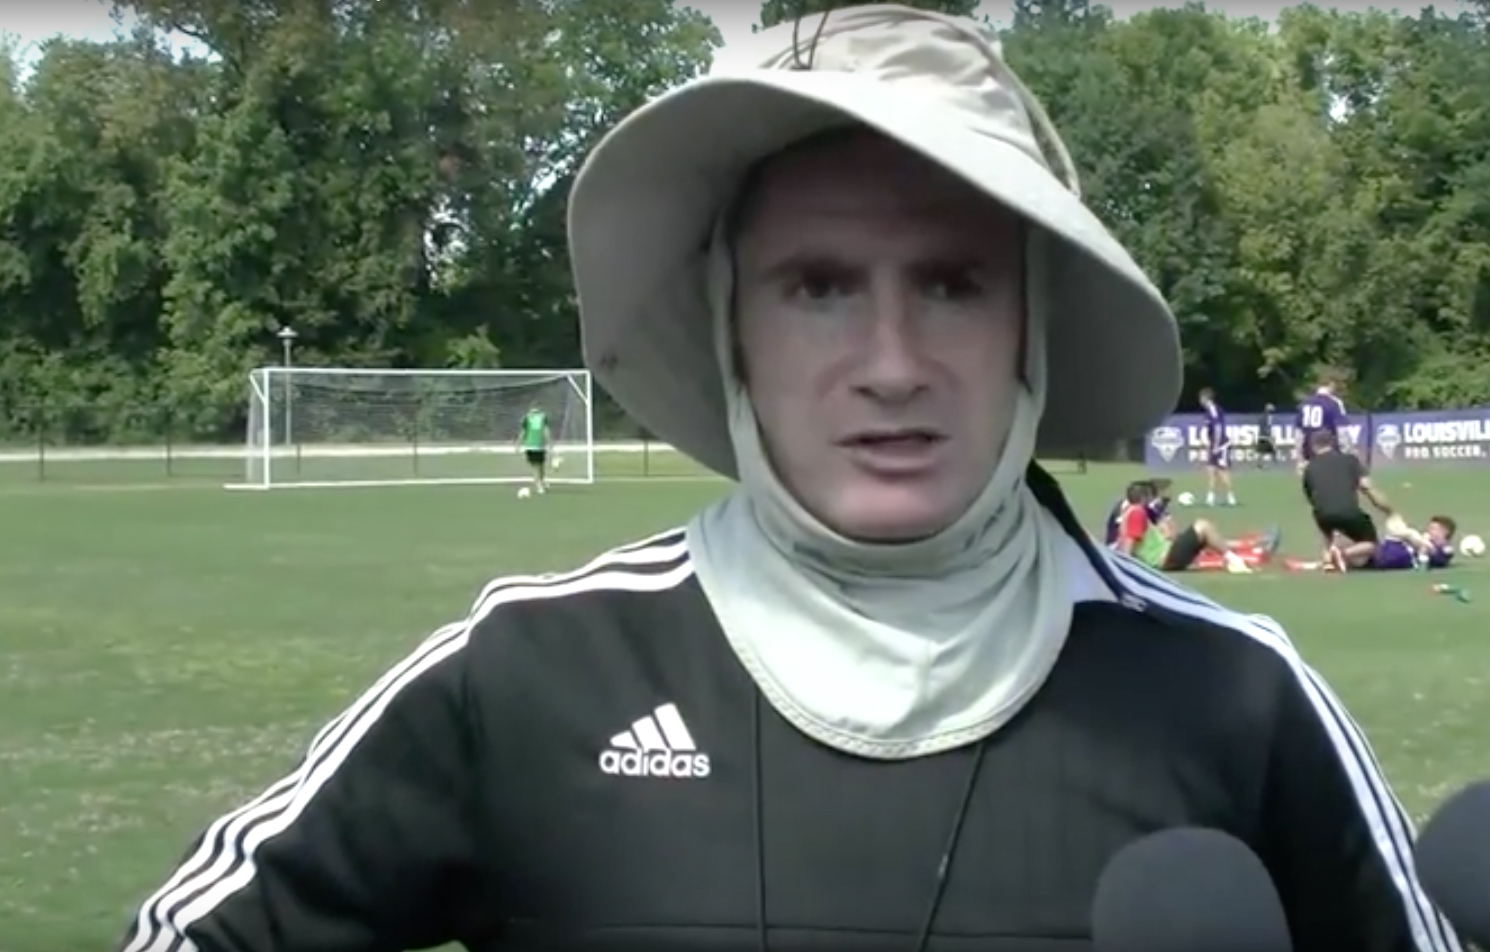 Coach O' Connor is known for organizing strong defenses both on the field and against the sun.